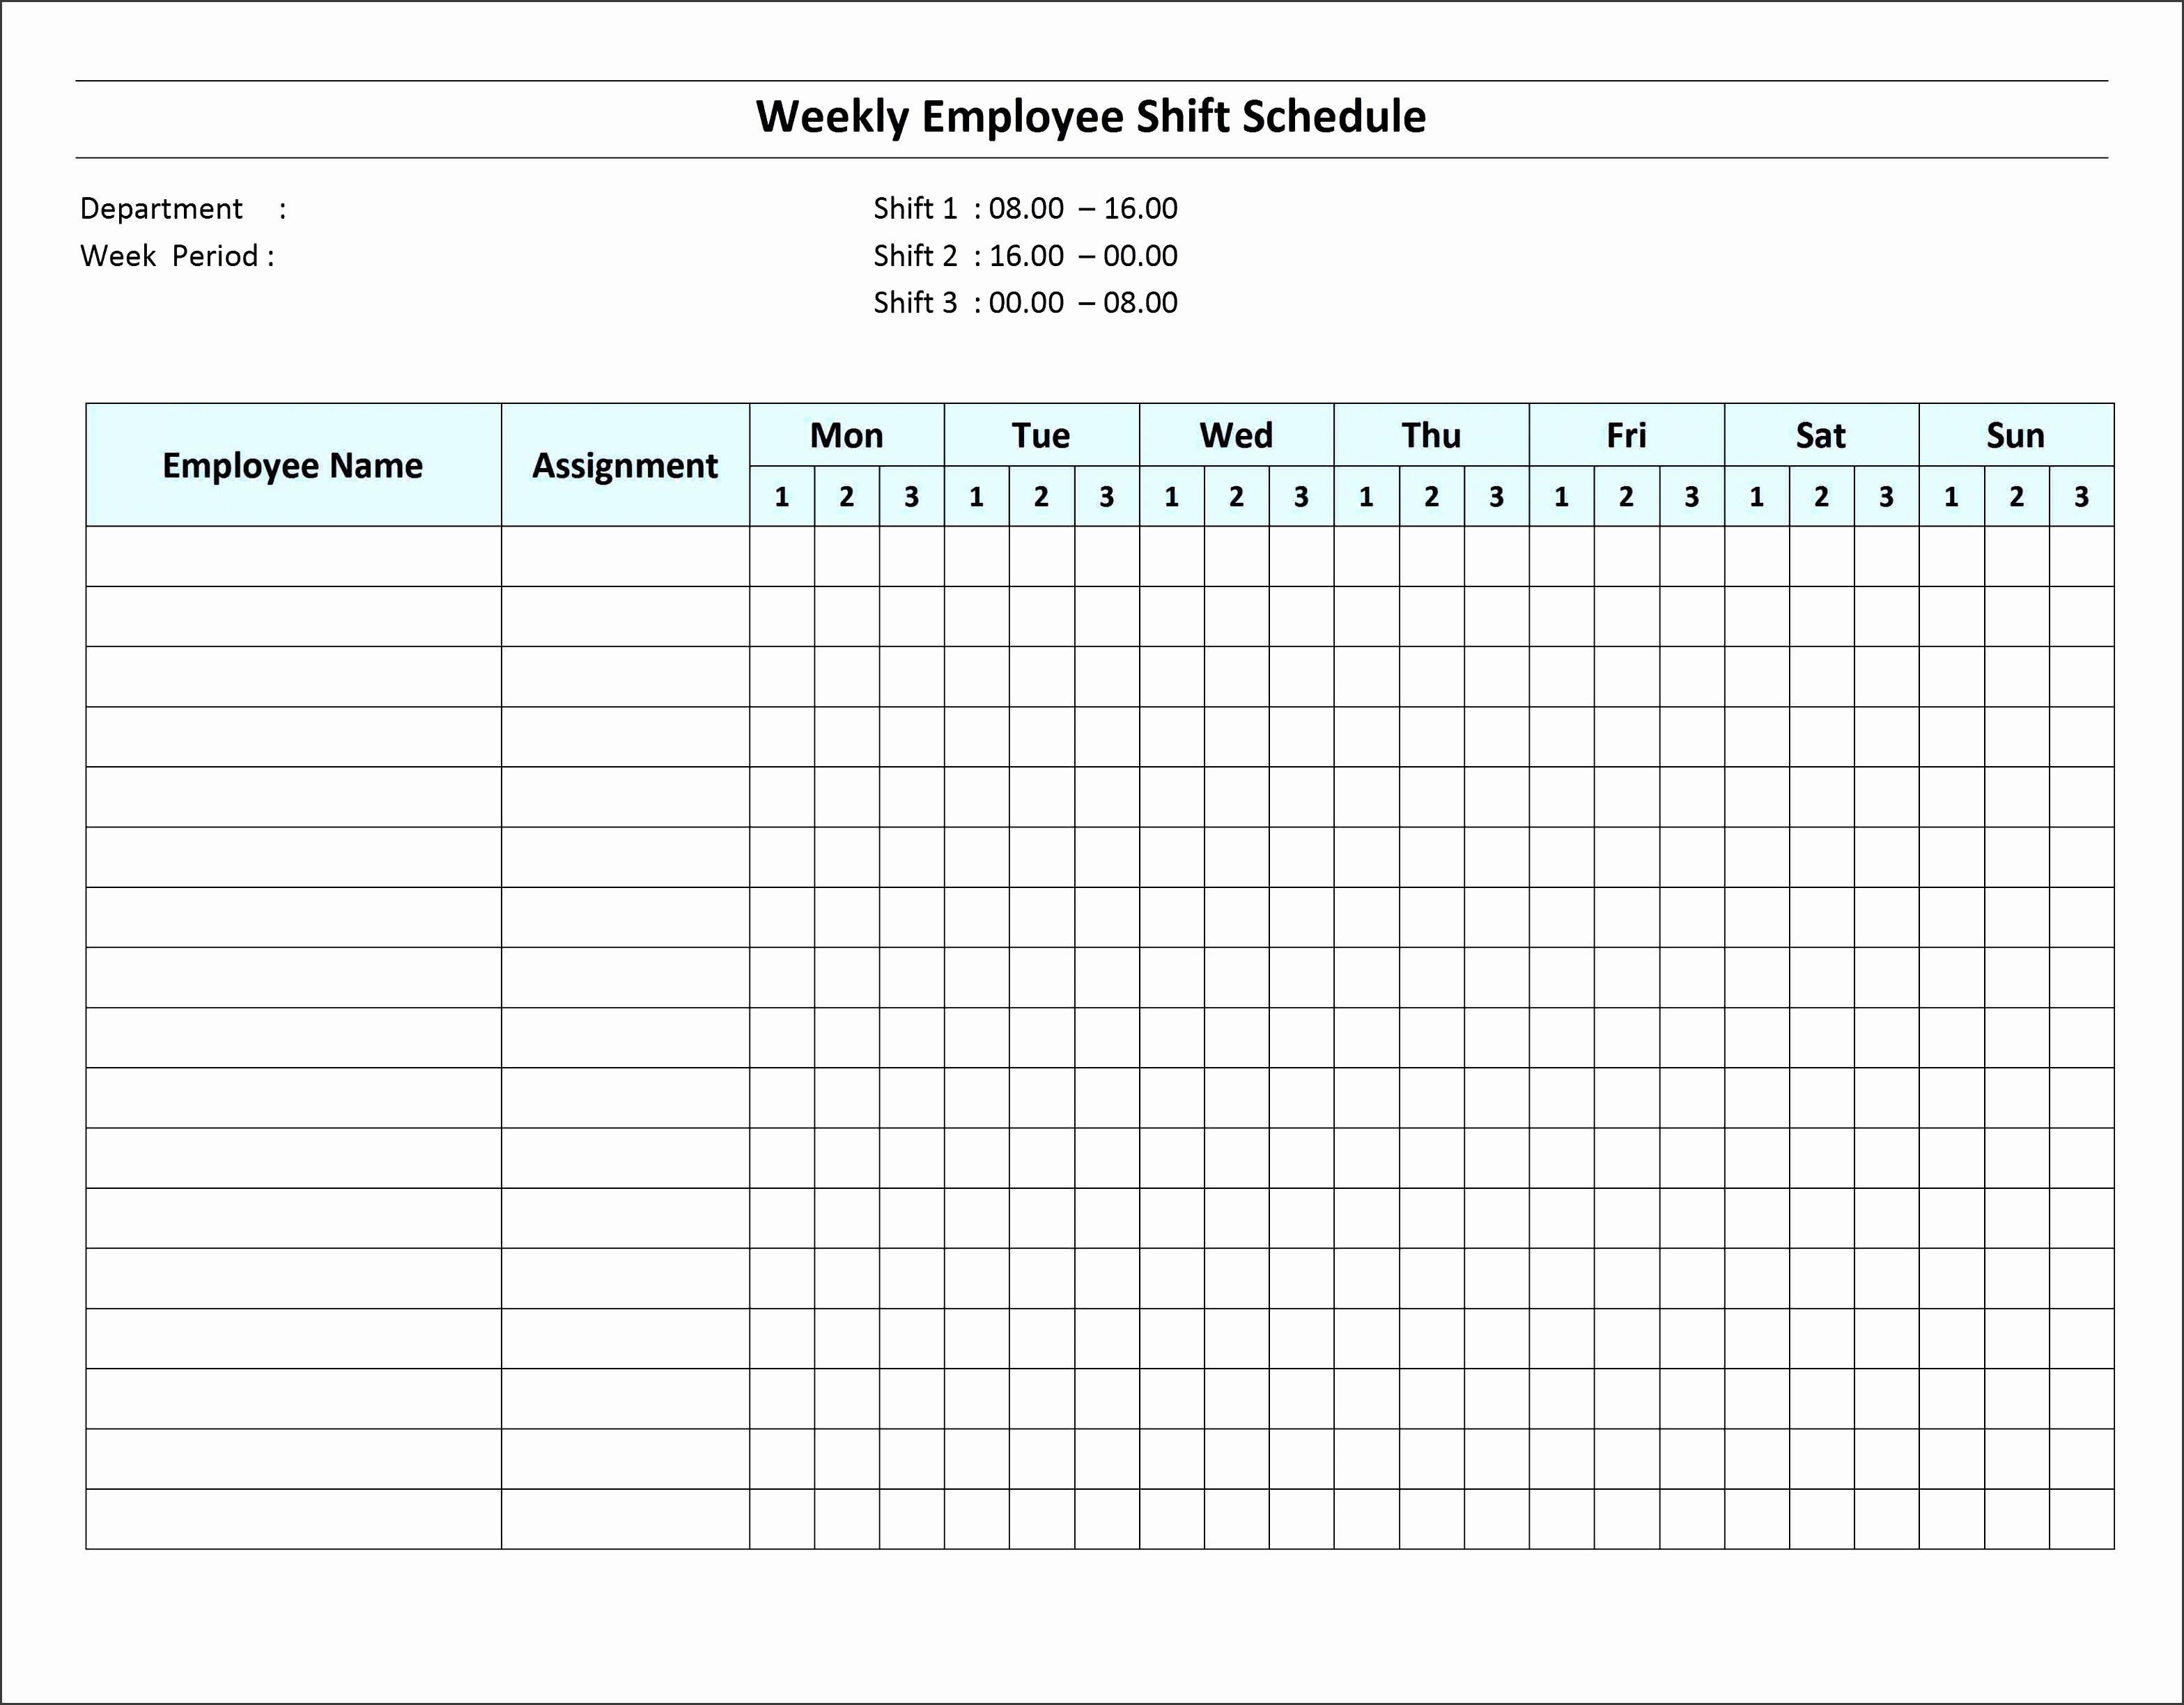 Weekly Employee Shift Schedule Template Awesome 6 Excel Daily Work Schedule Sampletemplatess